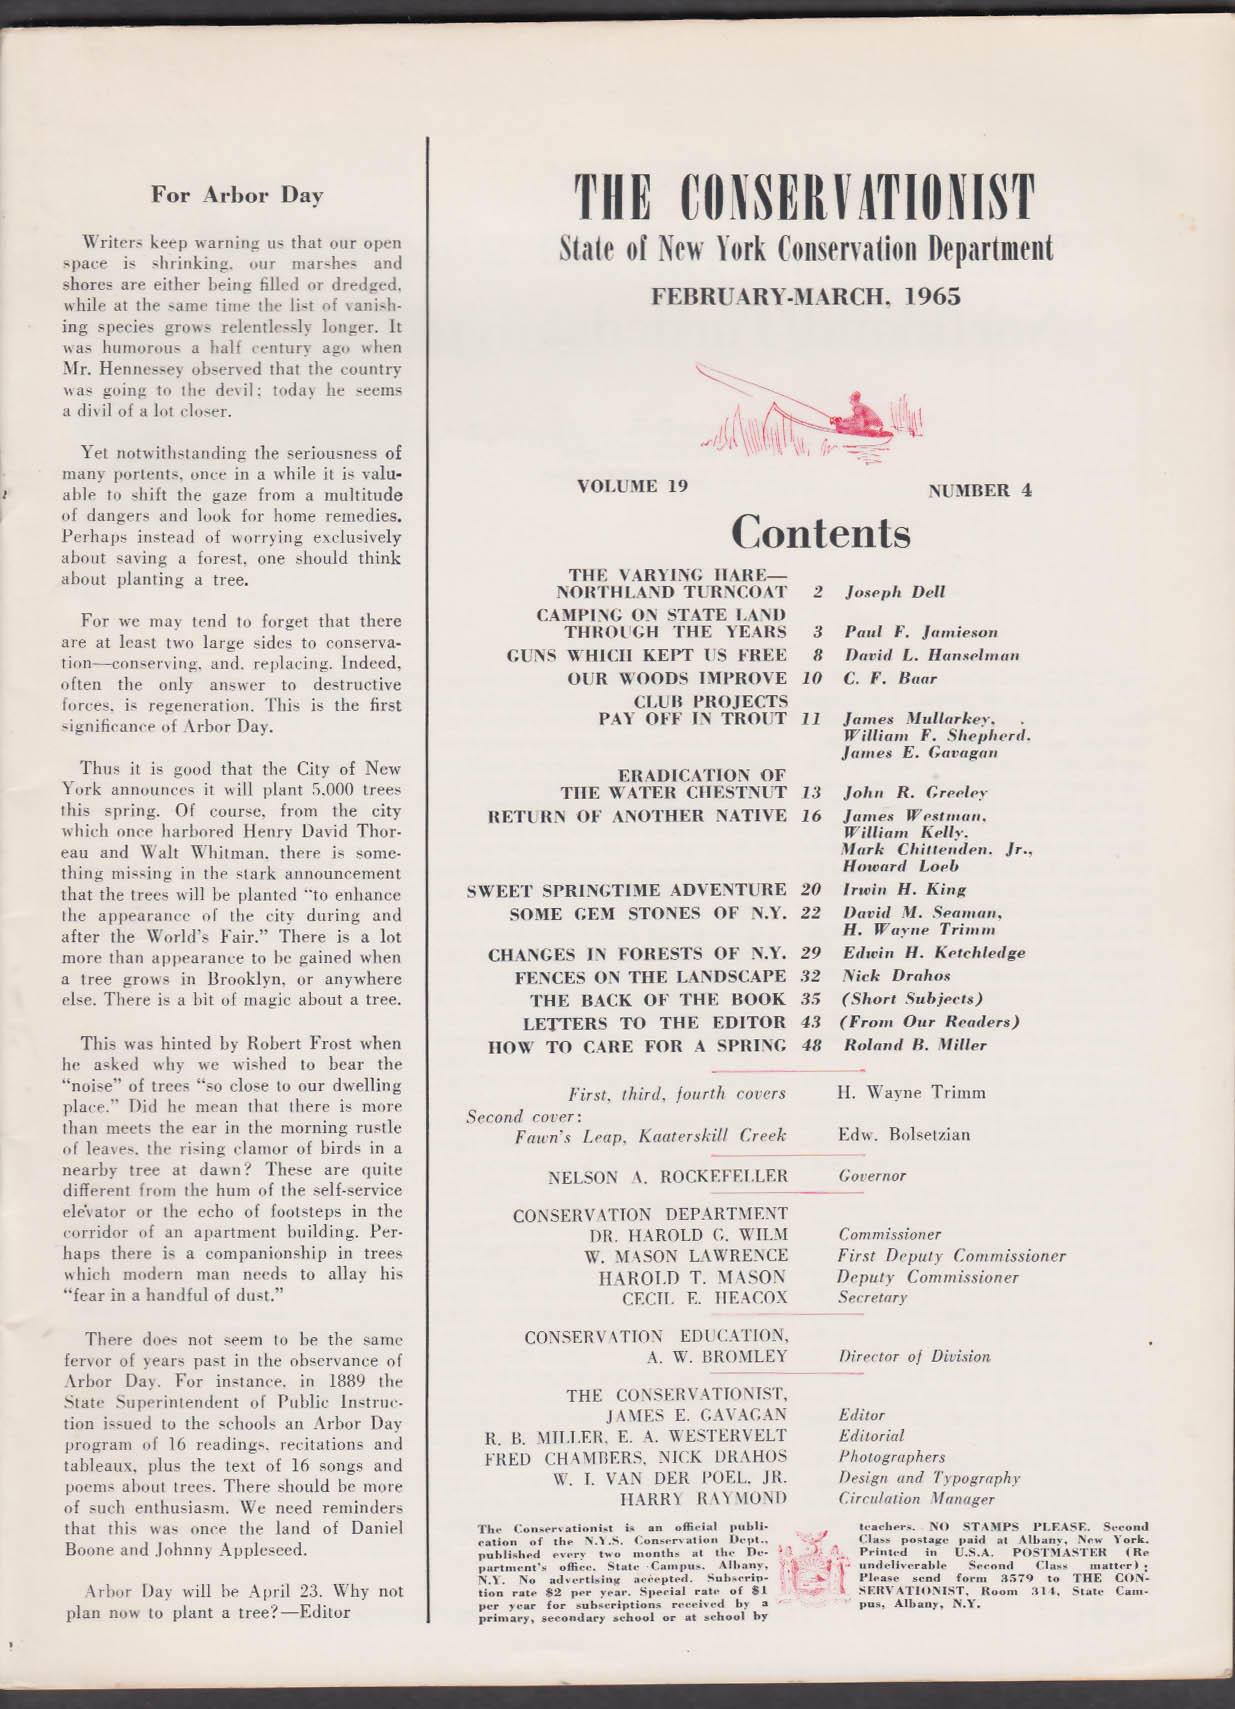 THE CONSERVATIONIST State of New York Conservation Department 2-3 1965